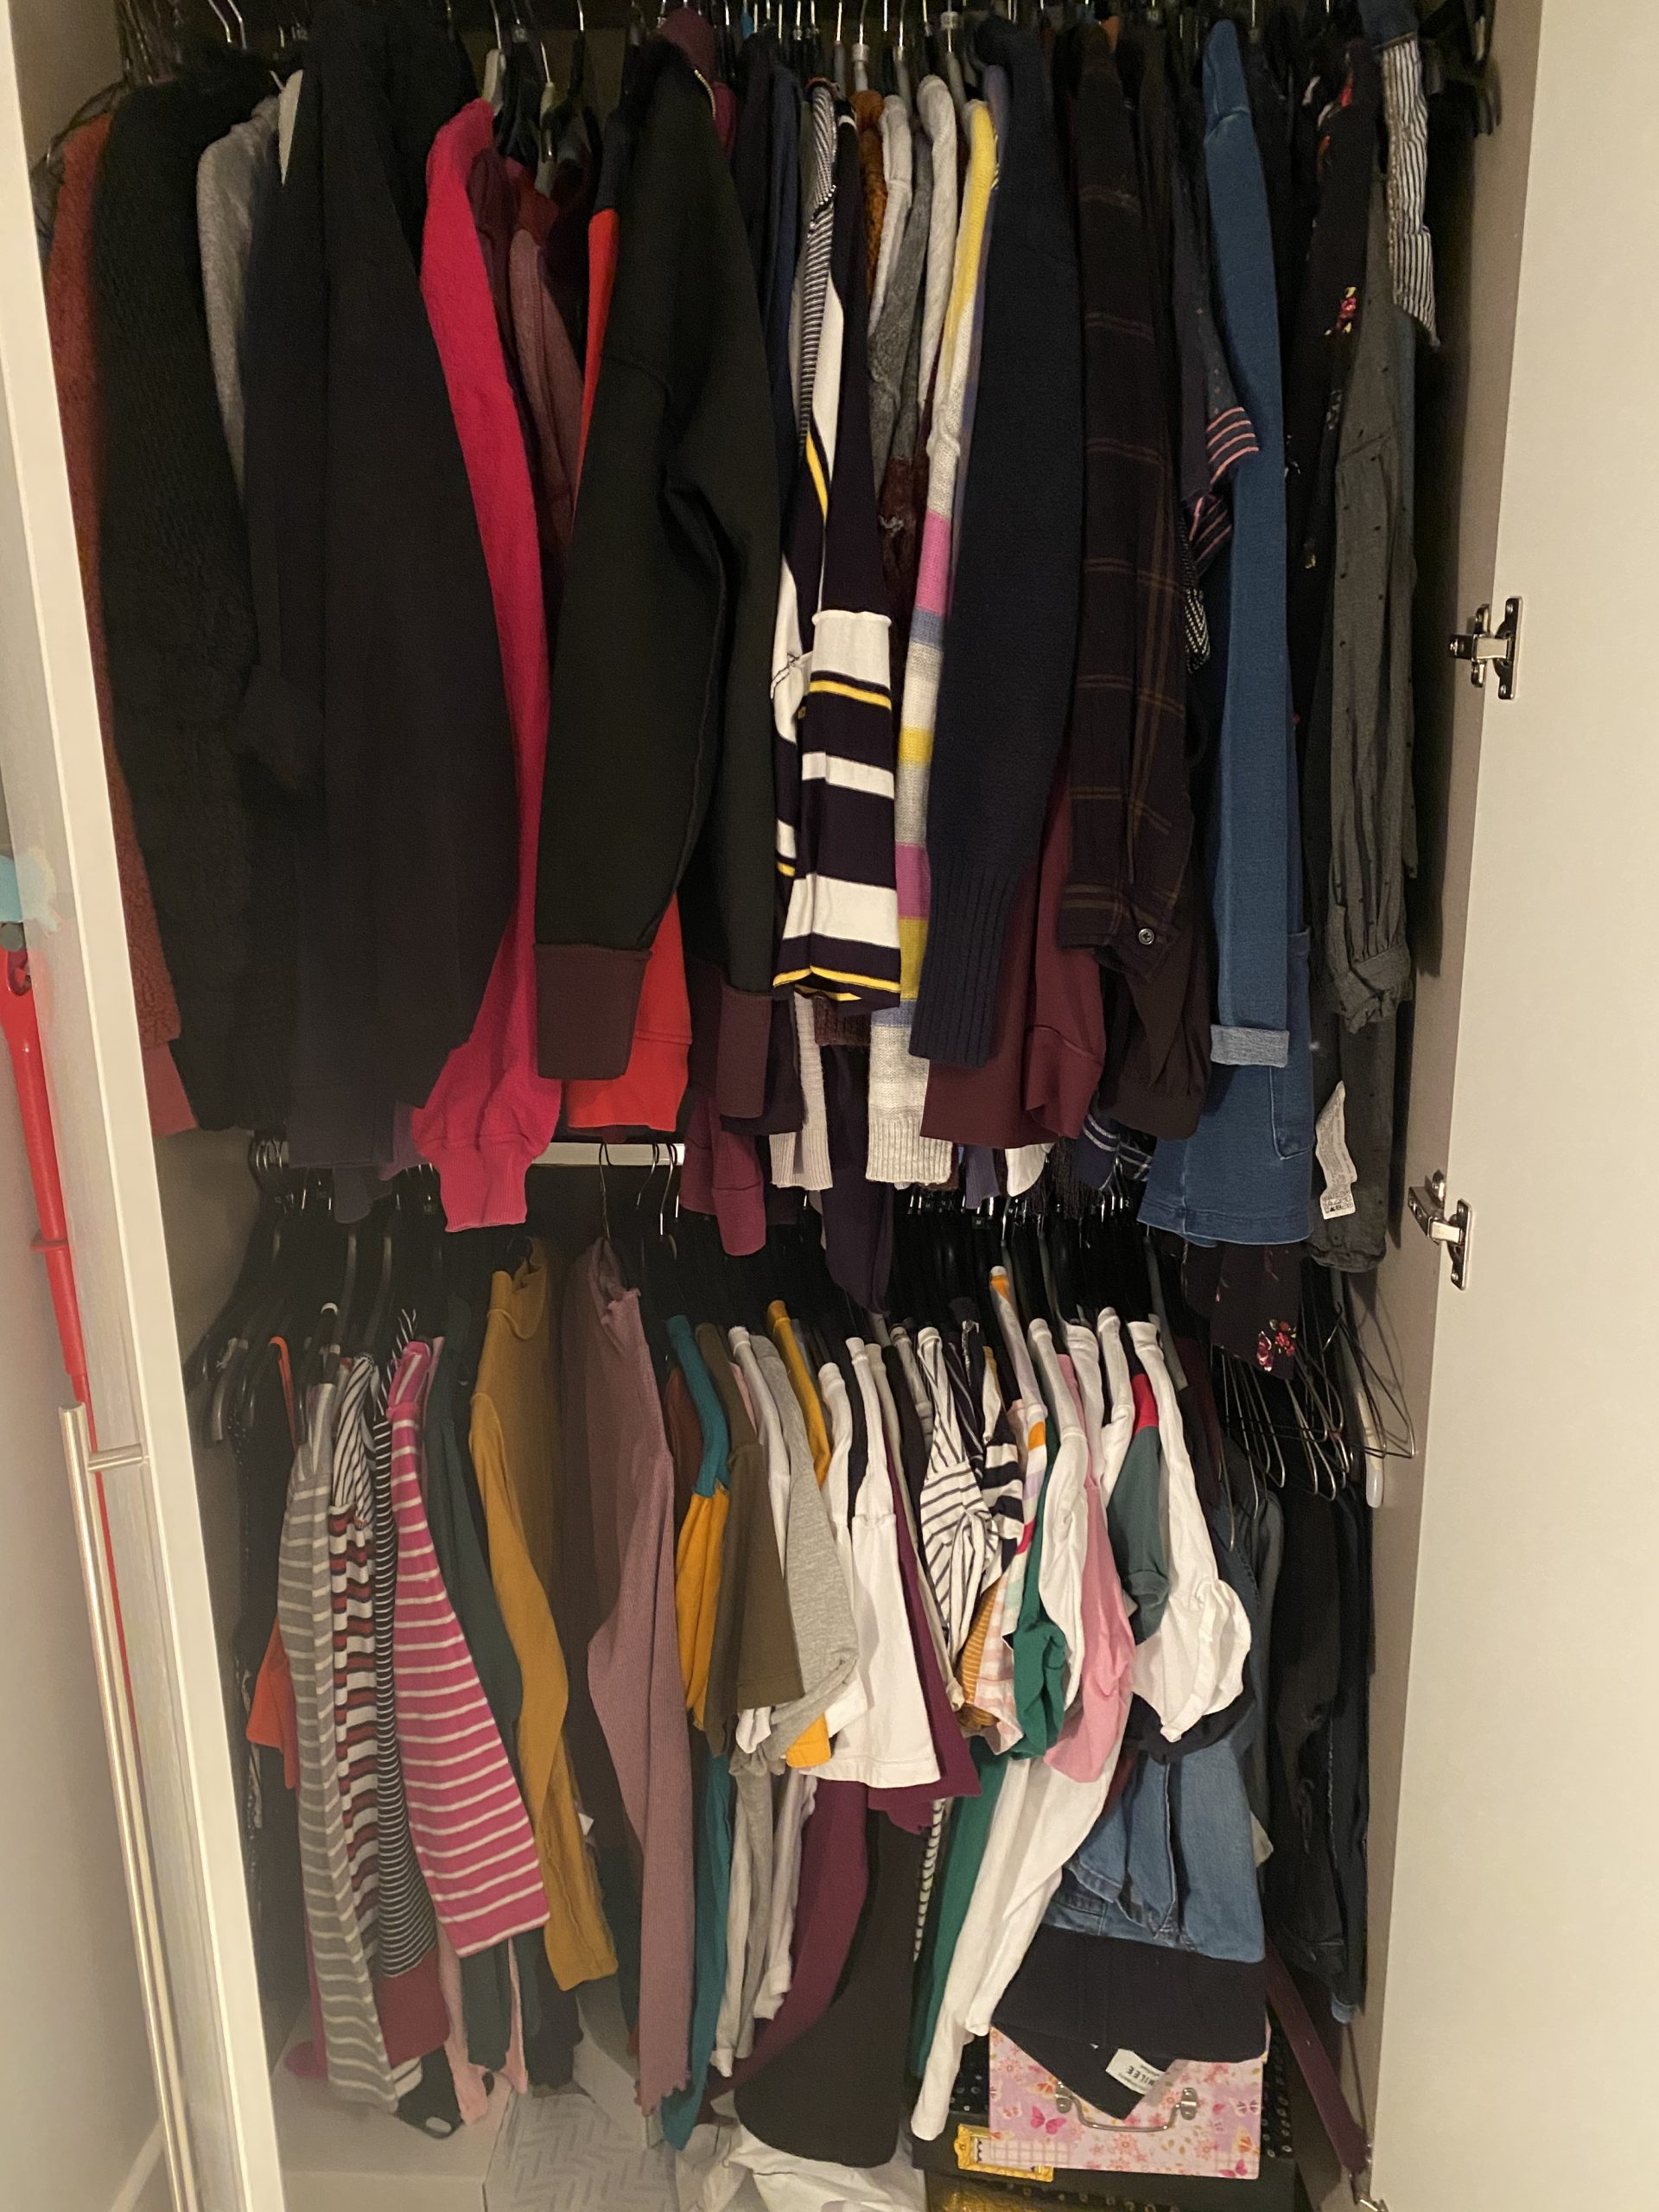 Organise your closet